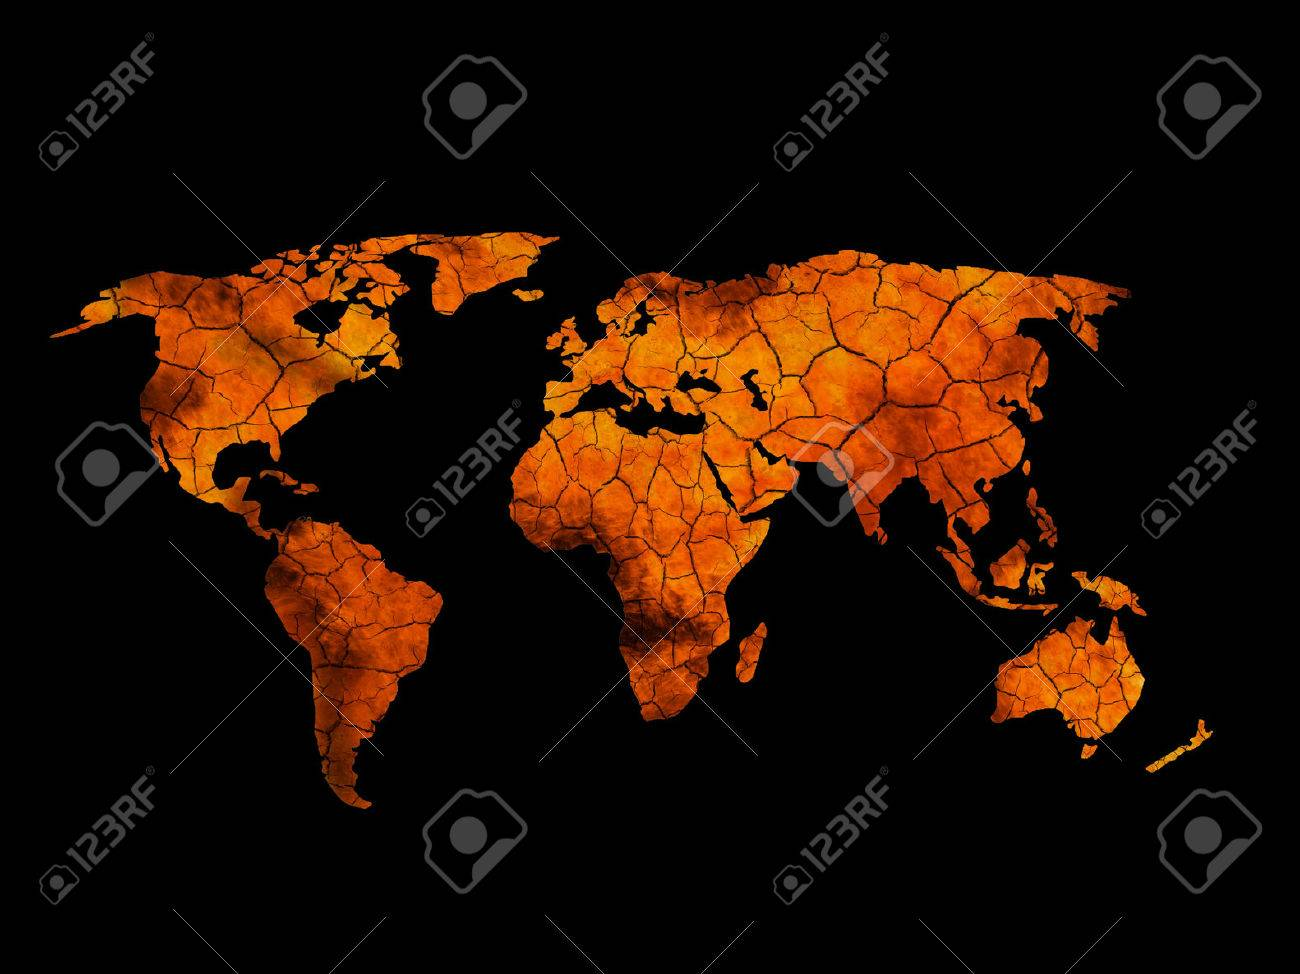 Scortched Earth Map.Cracked Scorched Earth Map Eco Background Climate Change Stock